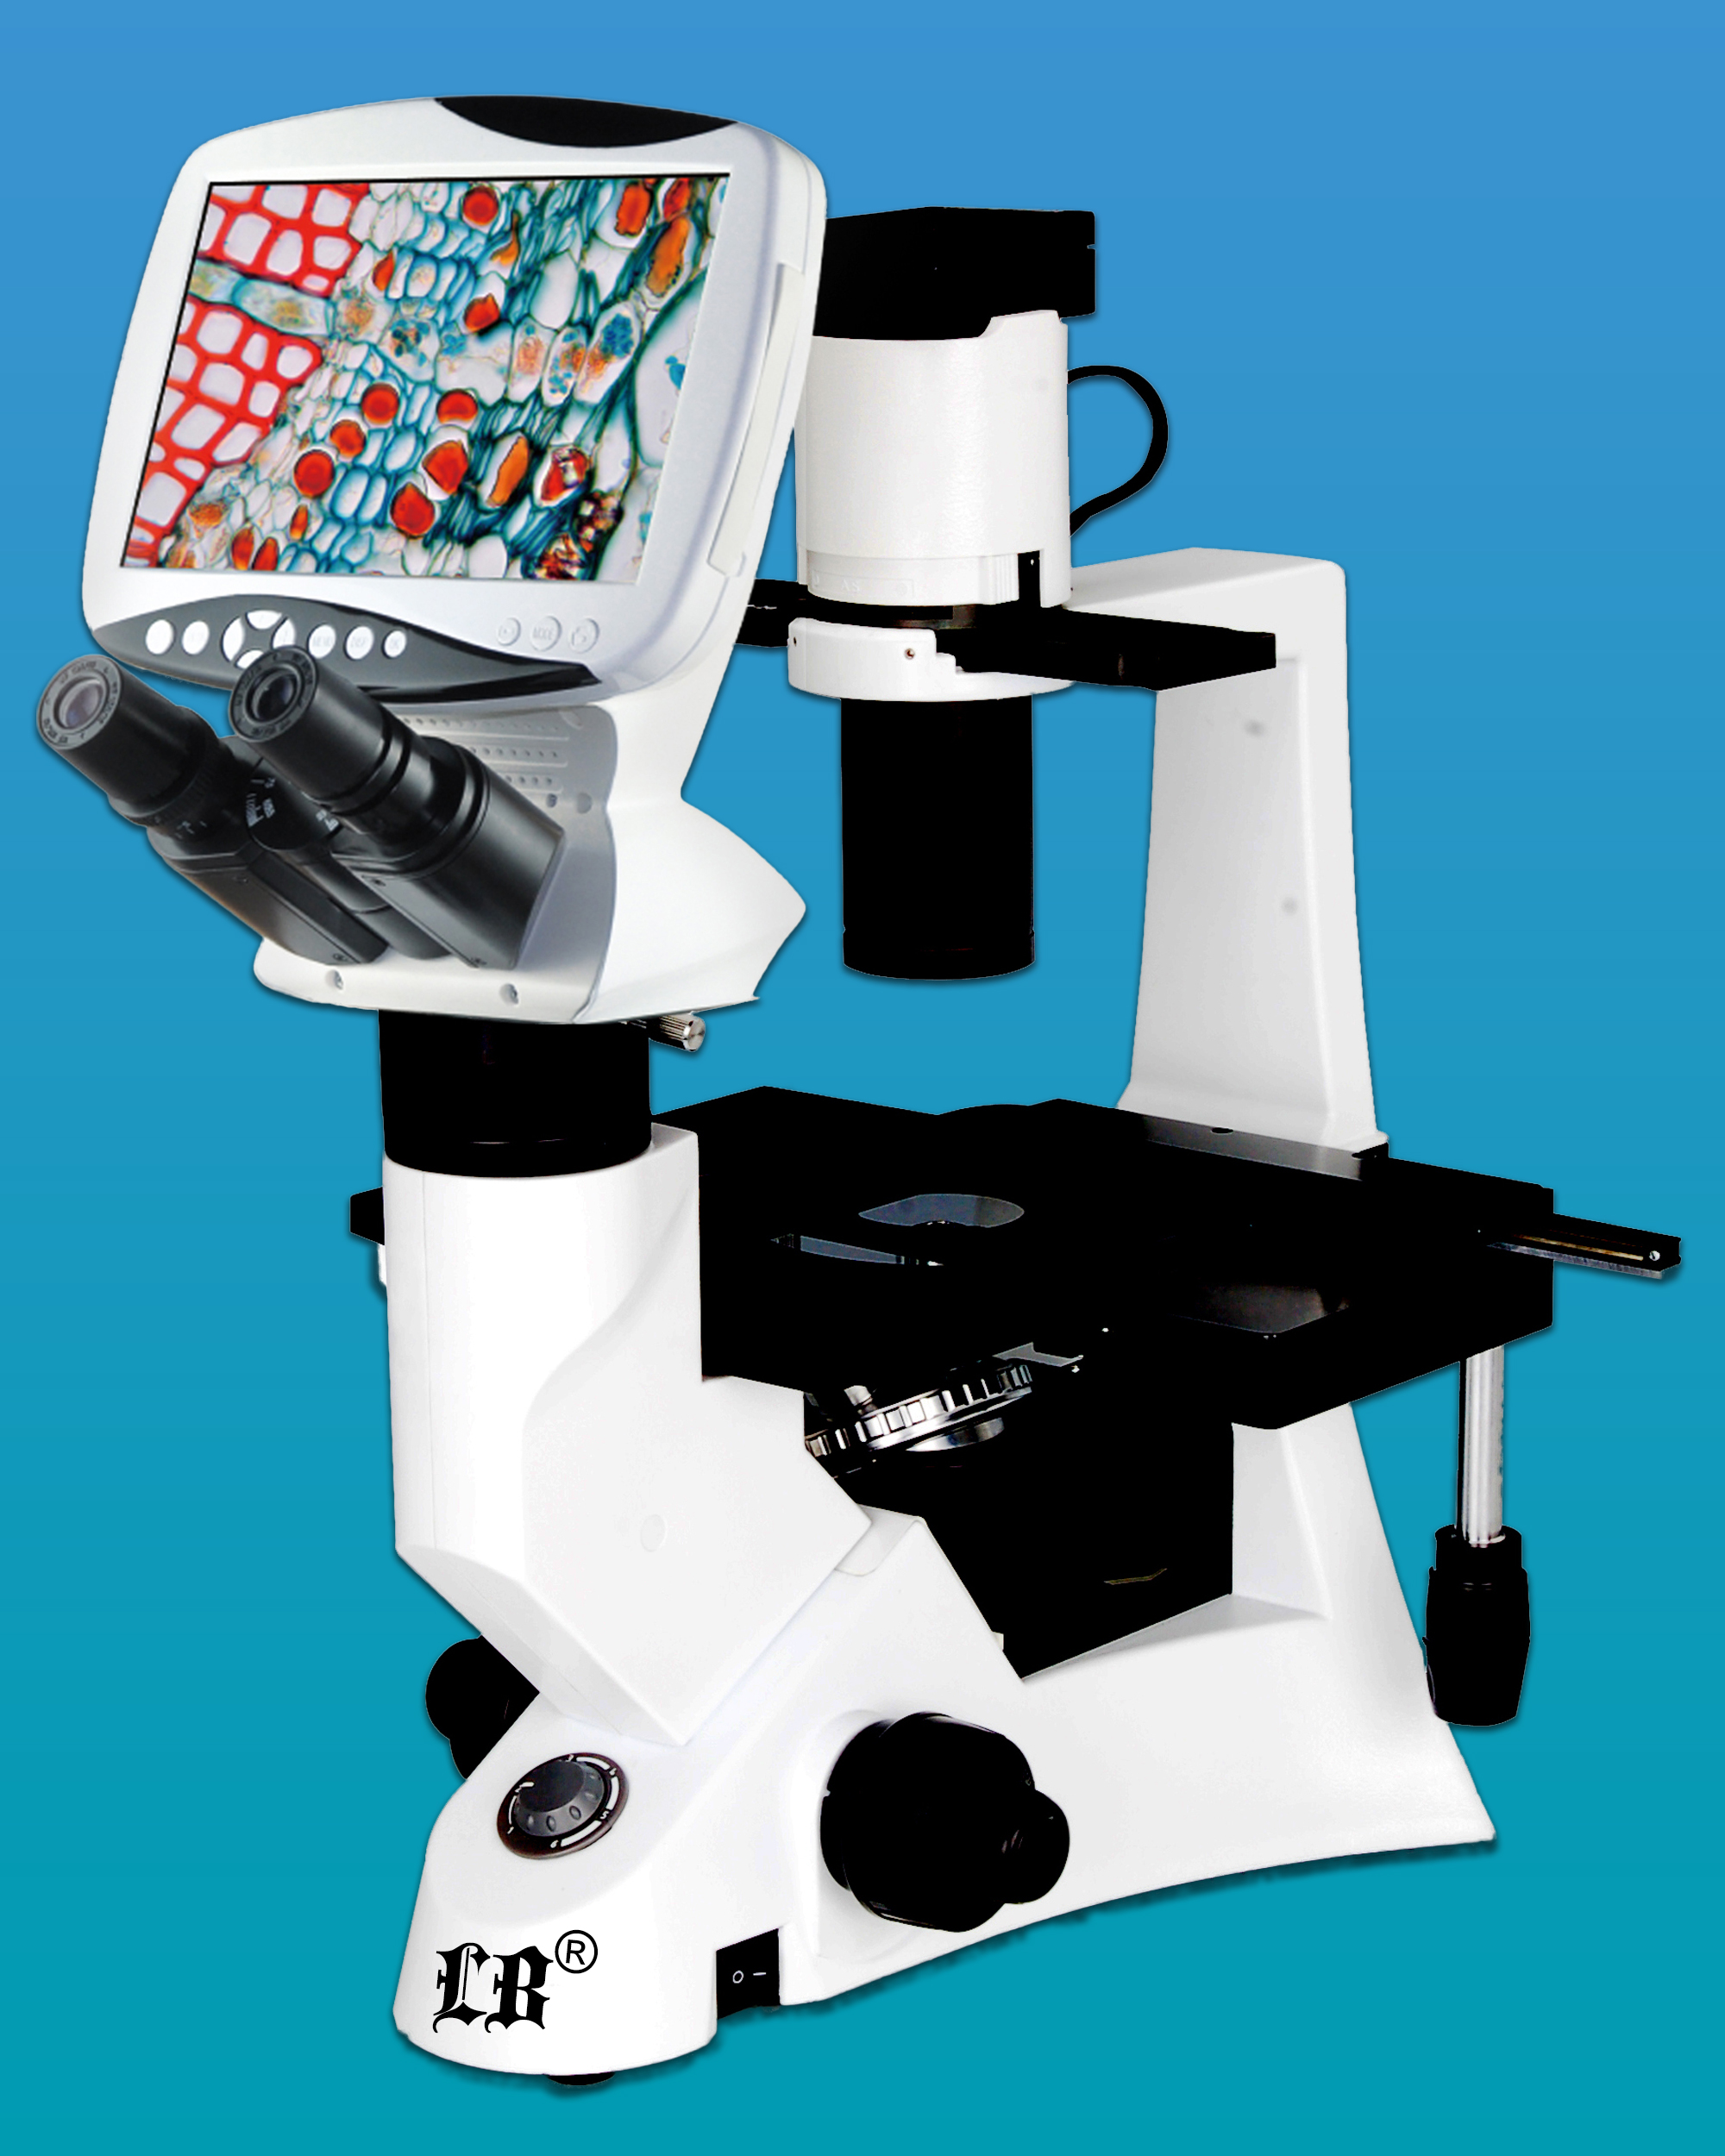 [LB-1290] Compound Digital LCD Inverted Biological Microscope w/ Infinite Optical System